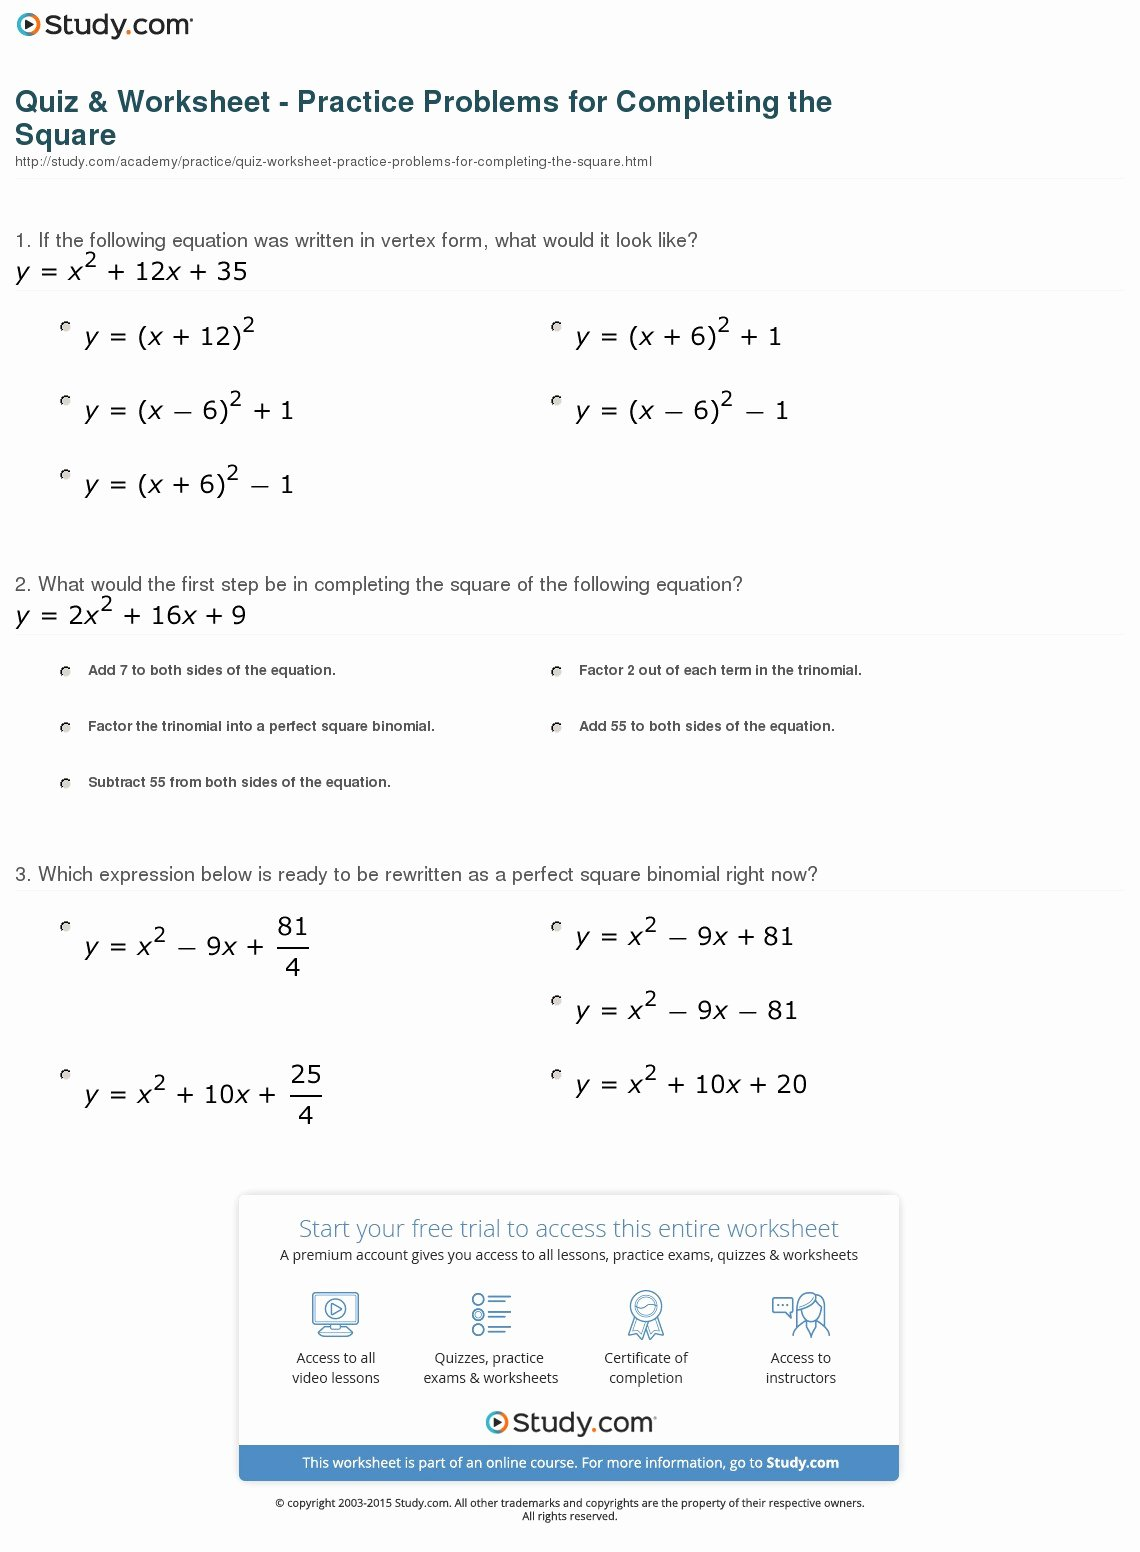 Completing the Square Practice Worksheet Printable Pleting the Square Worksheets with Answers